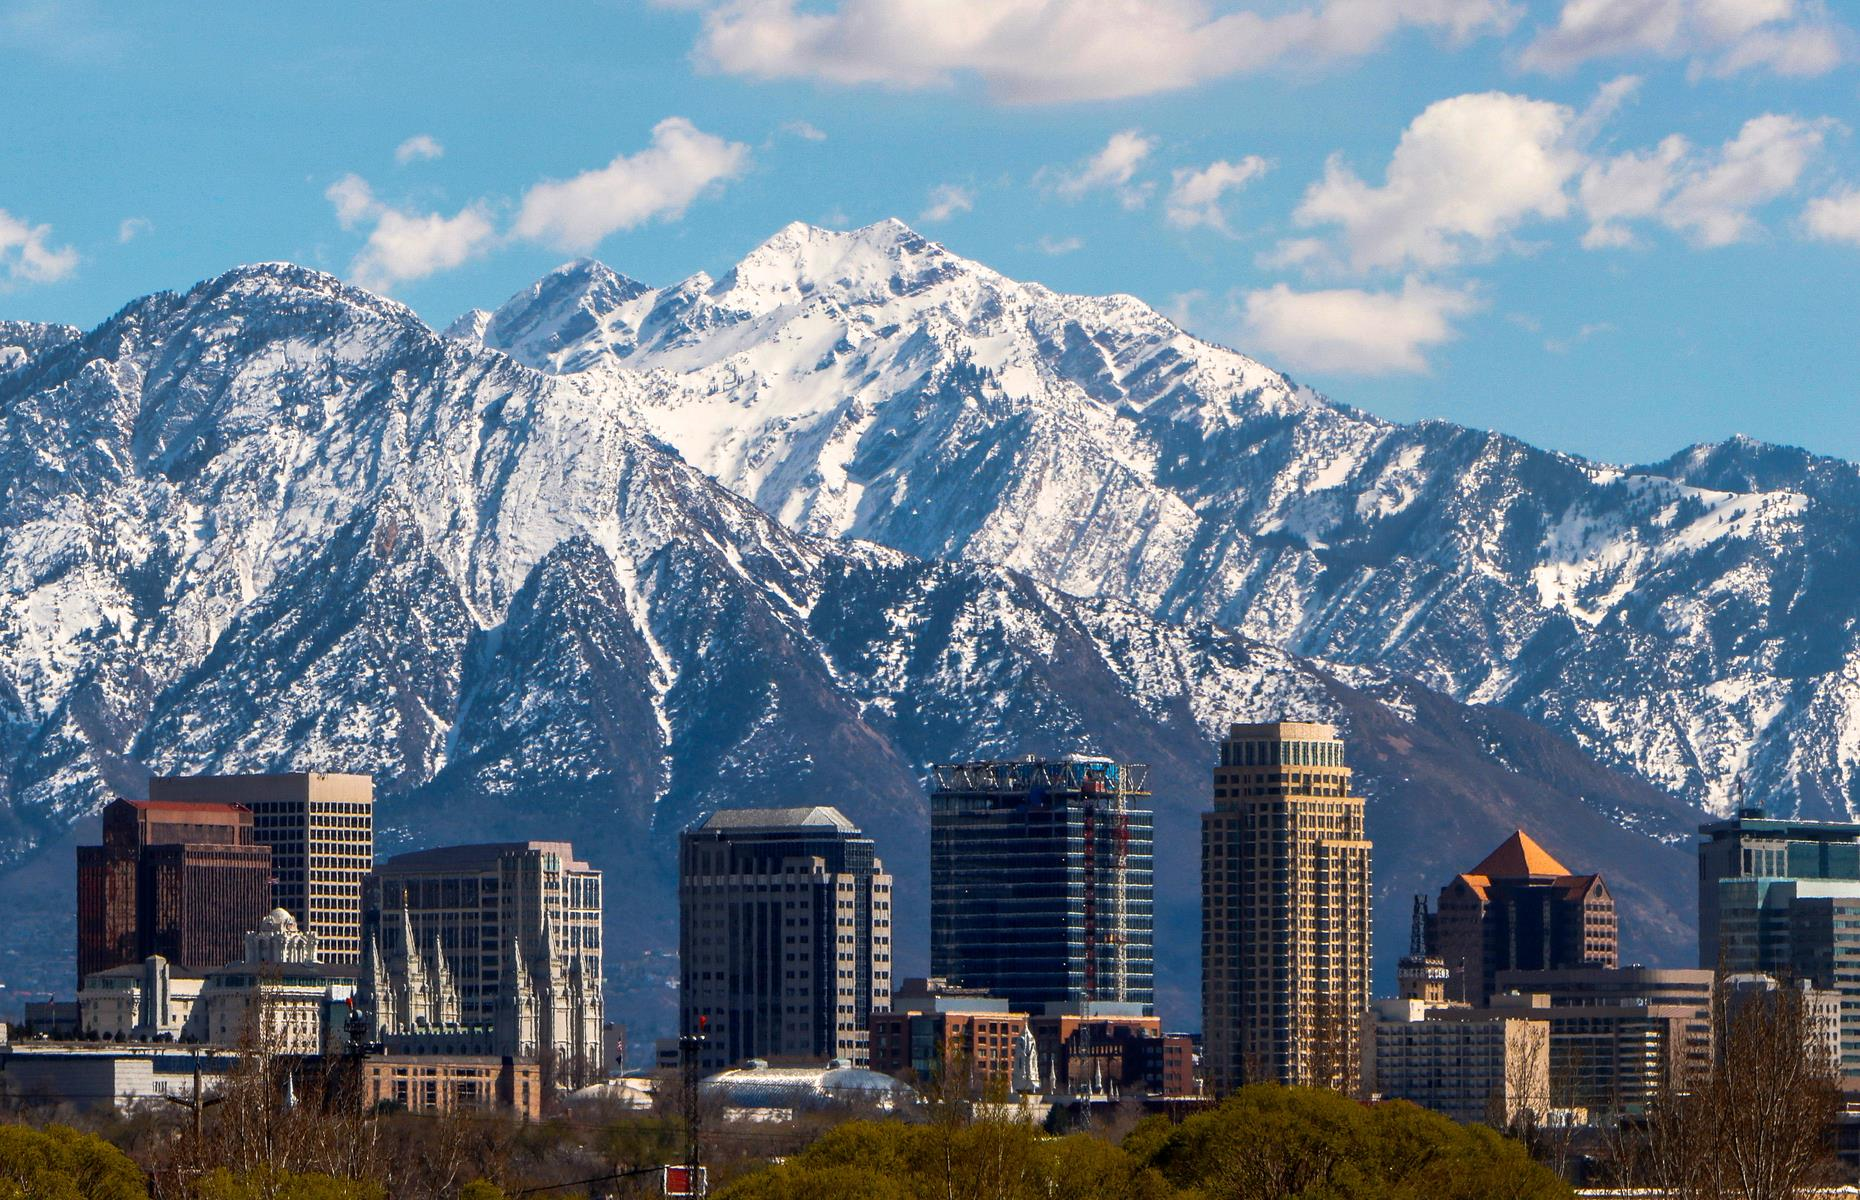 Slide 12 of 29: There's truly gorgeous scenery striking out in all directions from Salt Lake City. This is Utah, after all. Visitors can breathe in the hip, high-perched city's crisp air and take in the mountain views – so perfect they look like stage backdrops – before motoring south.